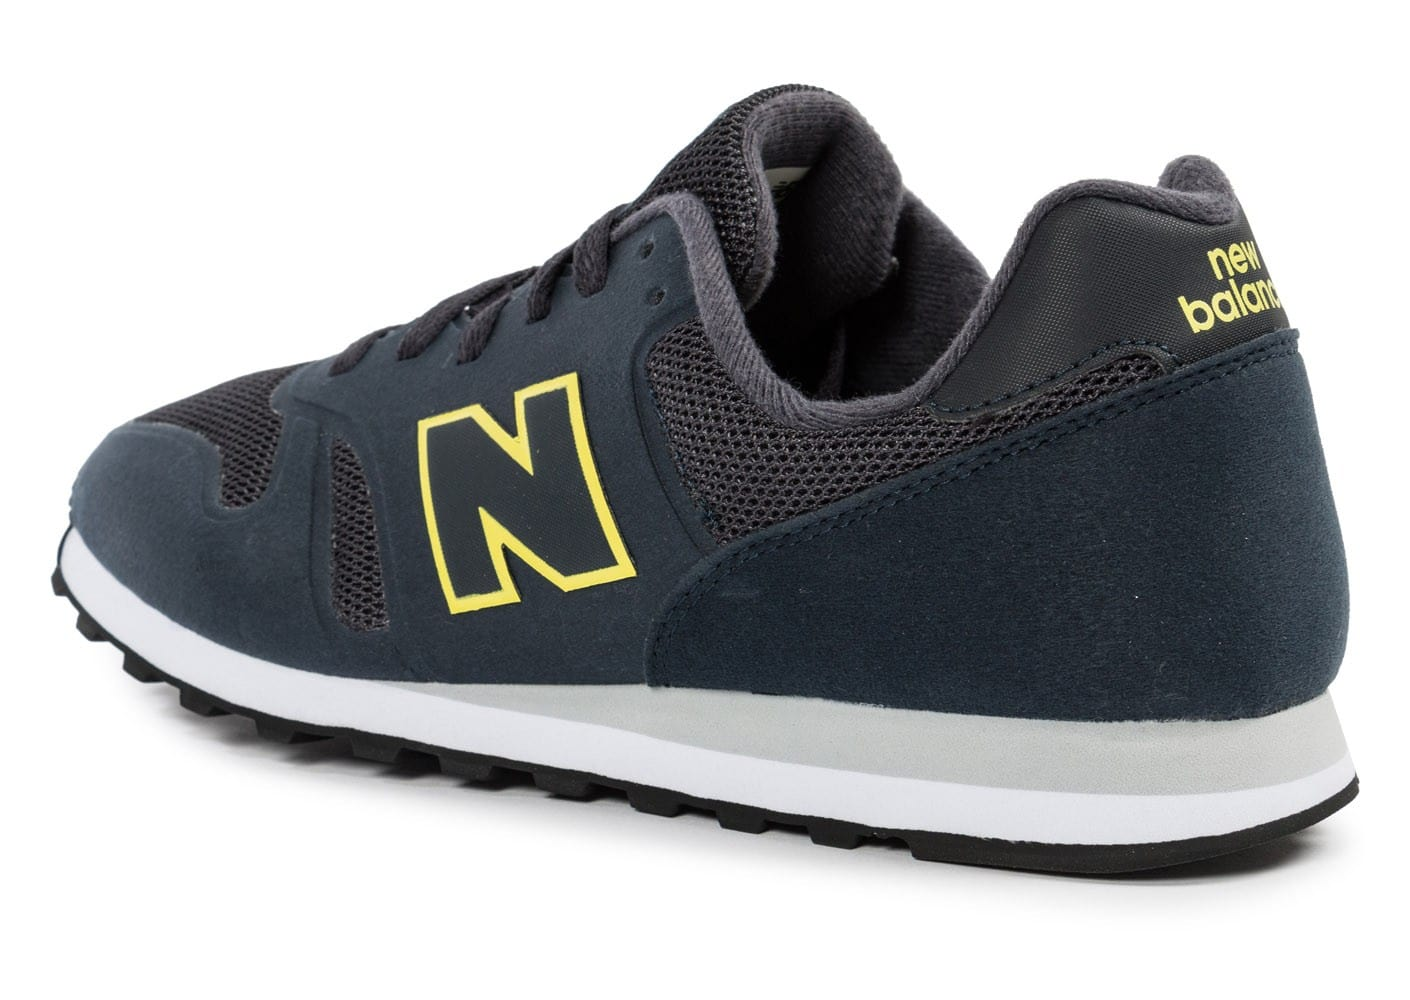 check out 21126 20205 0538-chaussures-new-balance-md373-ny-bleu-marine-vue-arriere 1.jpg